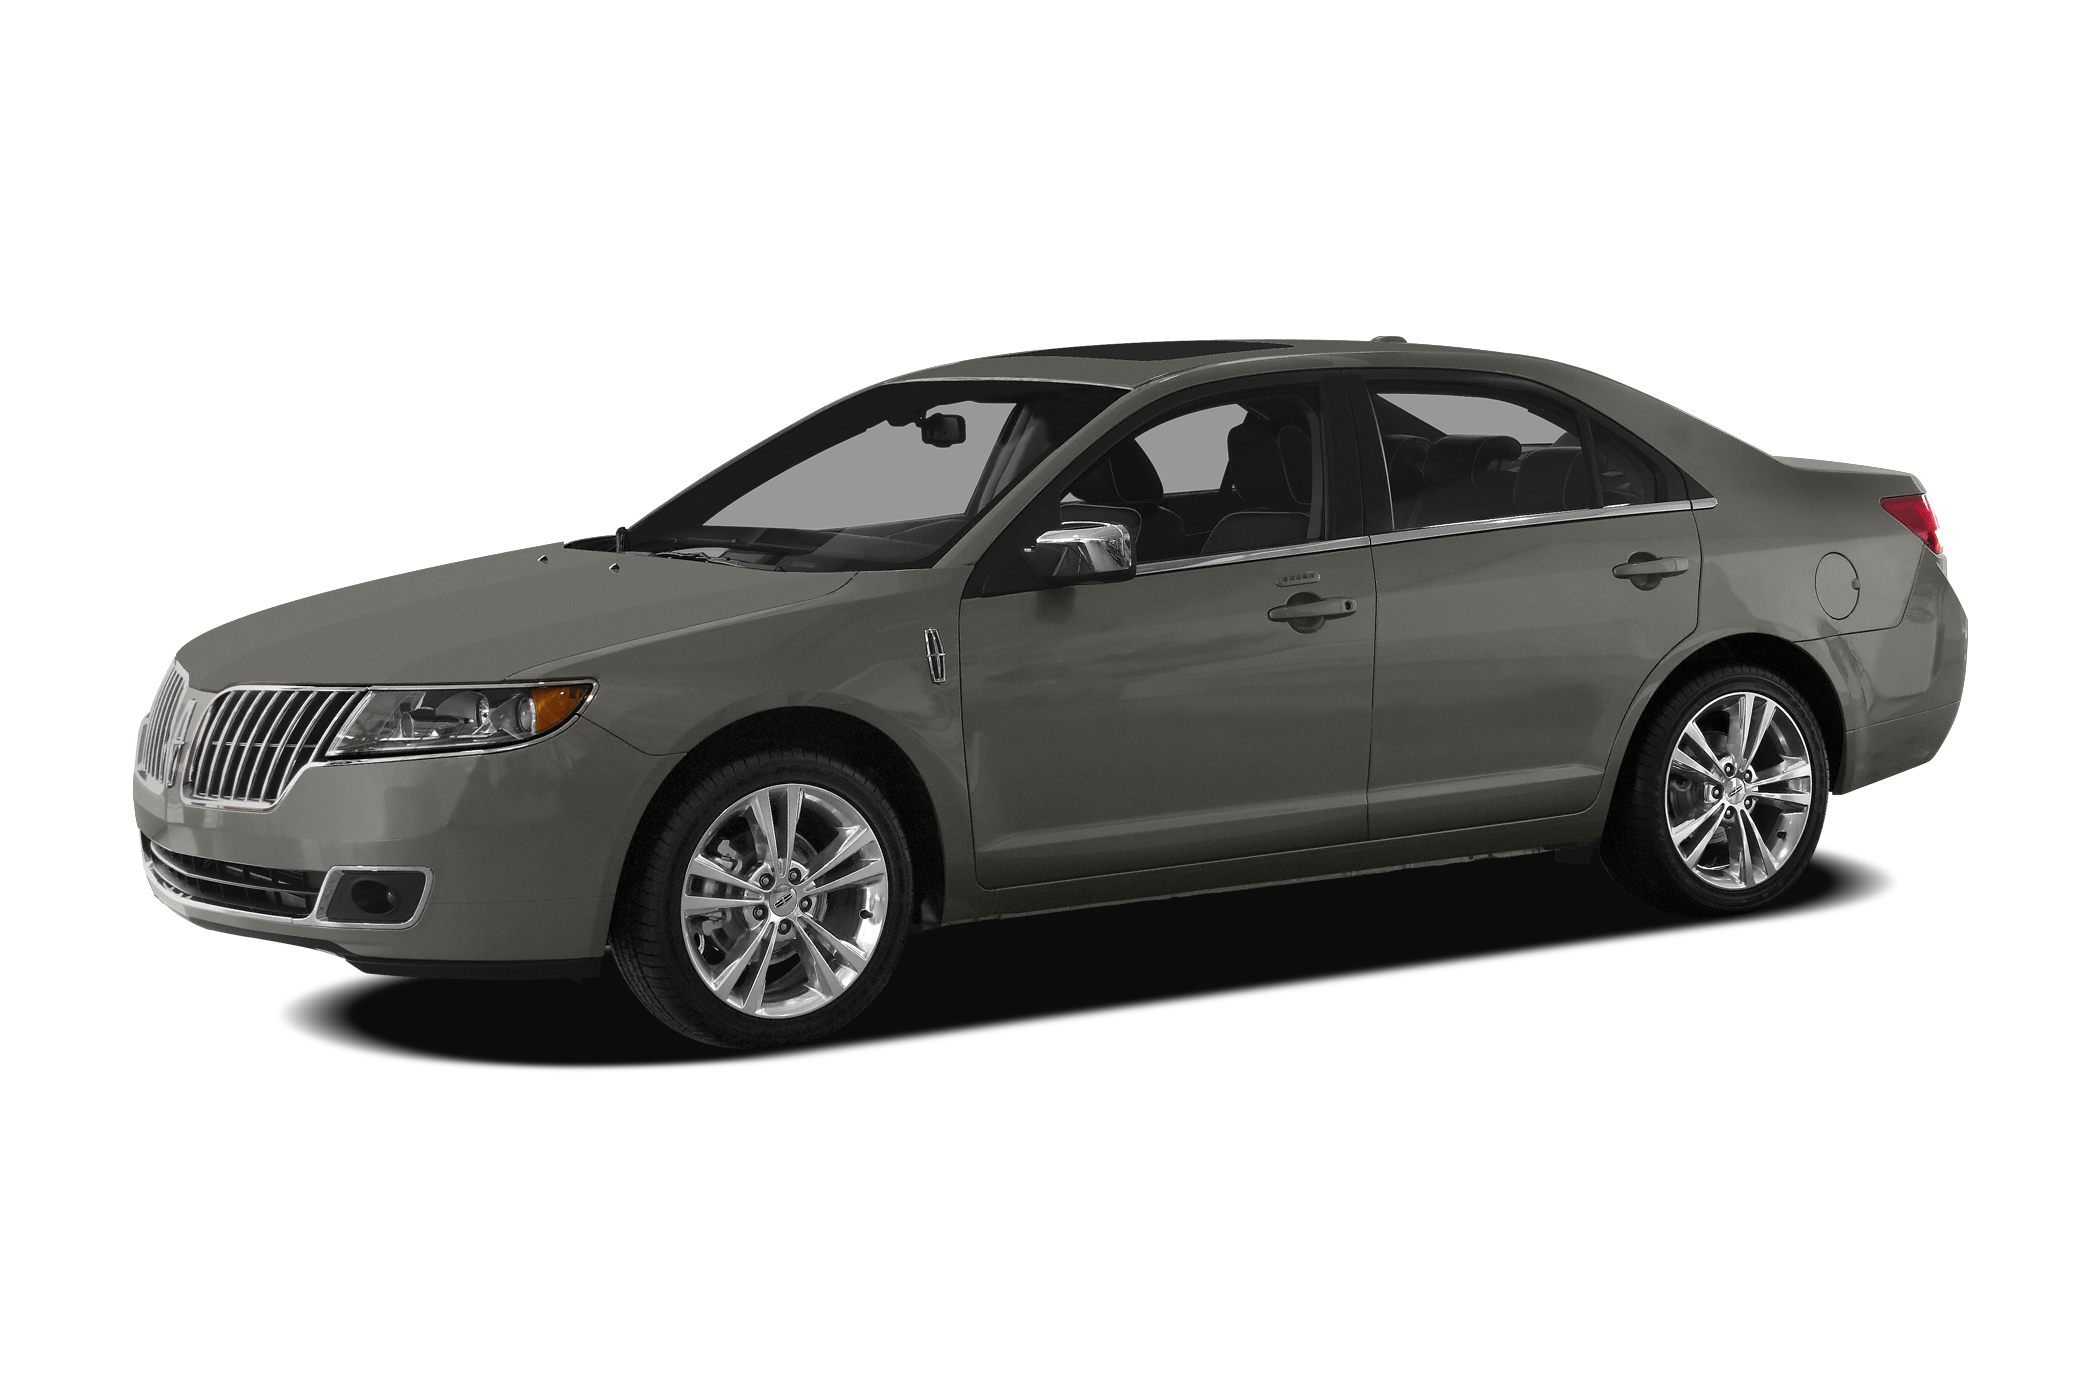 2010 Lincoln MKZ Sedan for sale in Fort Worth for $15,995 with 51,304 miles.